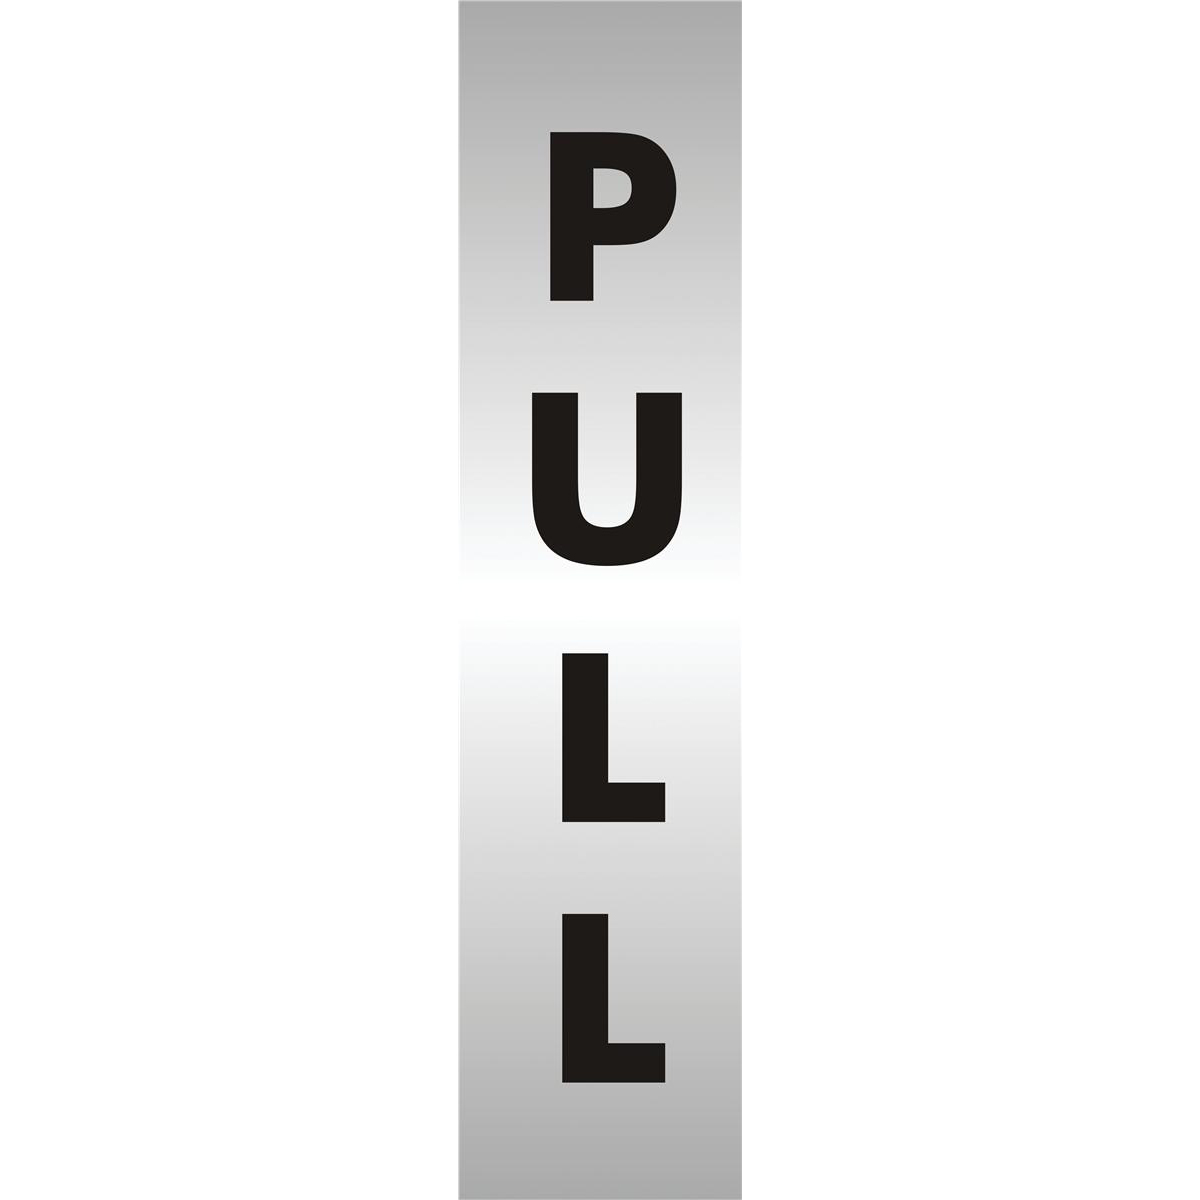 Advice Stewart Superior Pull Sign Brushed Aluminium Acrylic W45xH190mm Self-adhesive Ref bac127